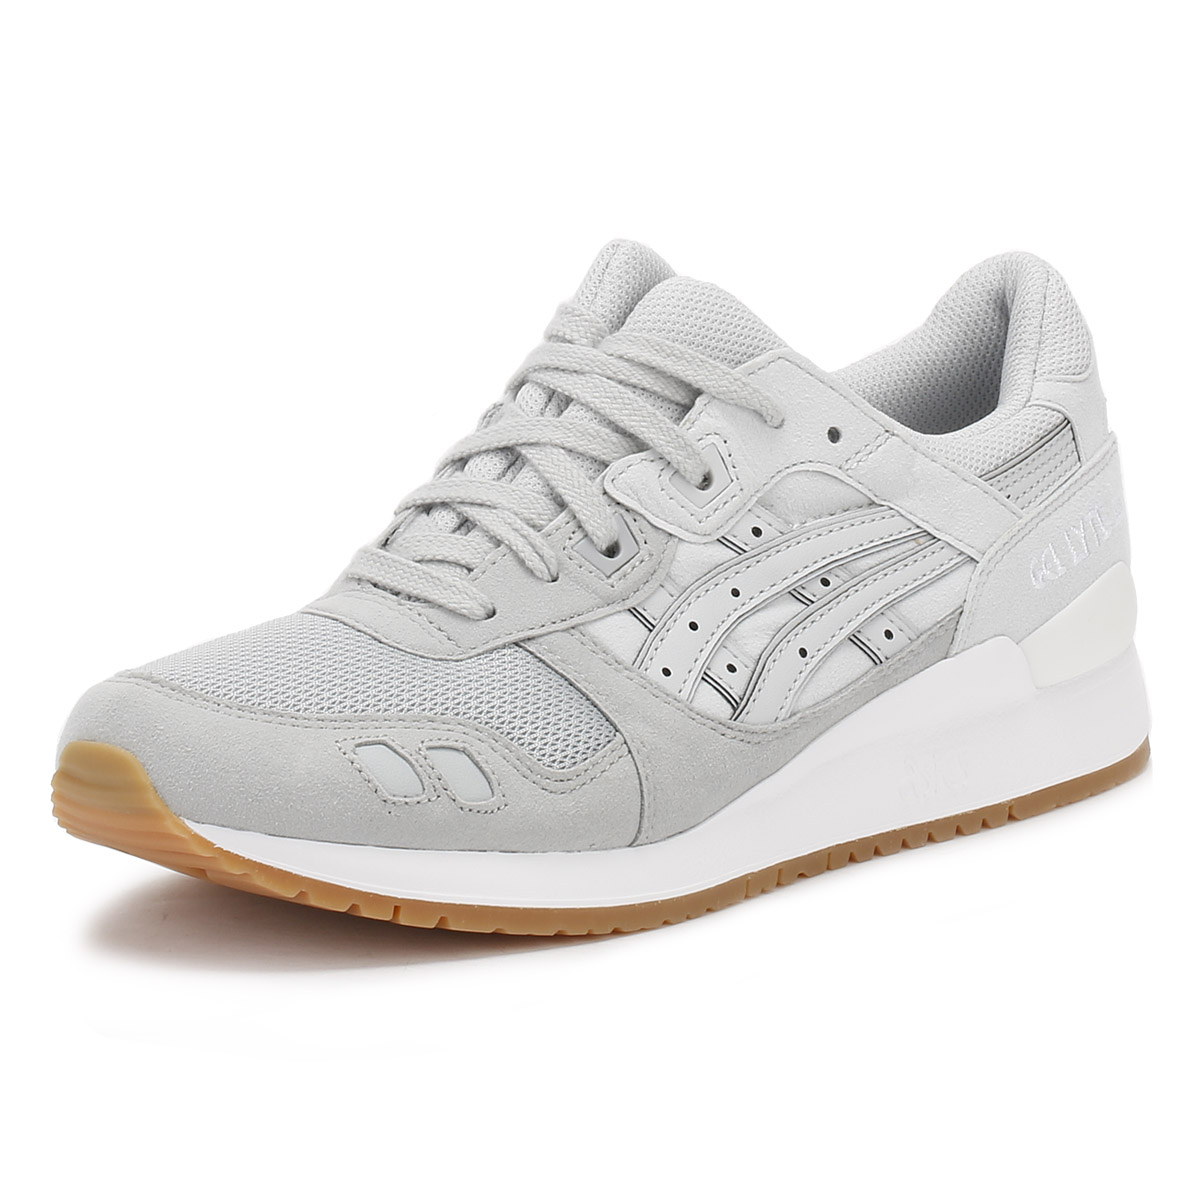 ASICS Unisex Trainers, Blue or Grey, Up Gel-Lyte III, Leather, Lace Up Grey, Sport Shoes 5bfb62